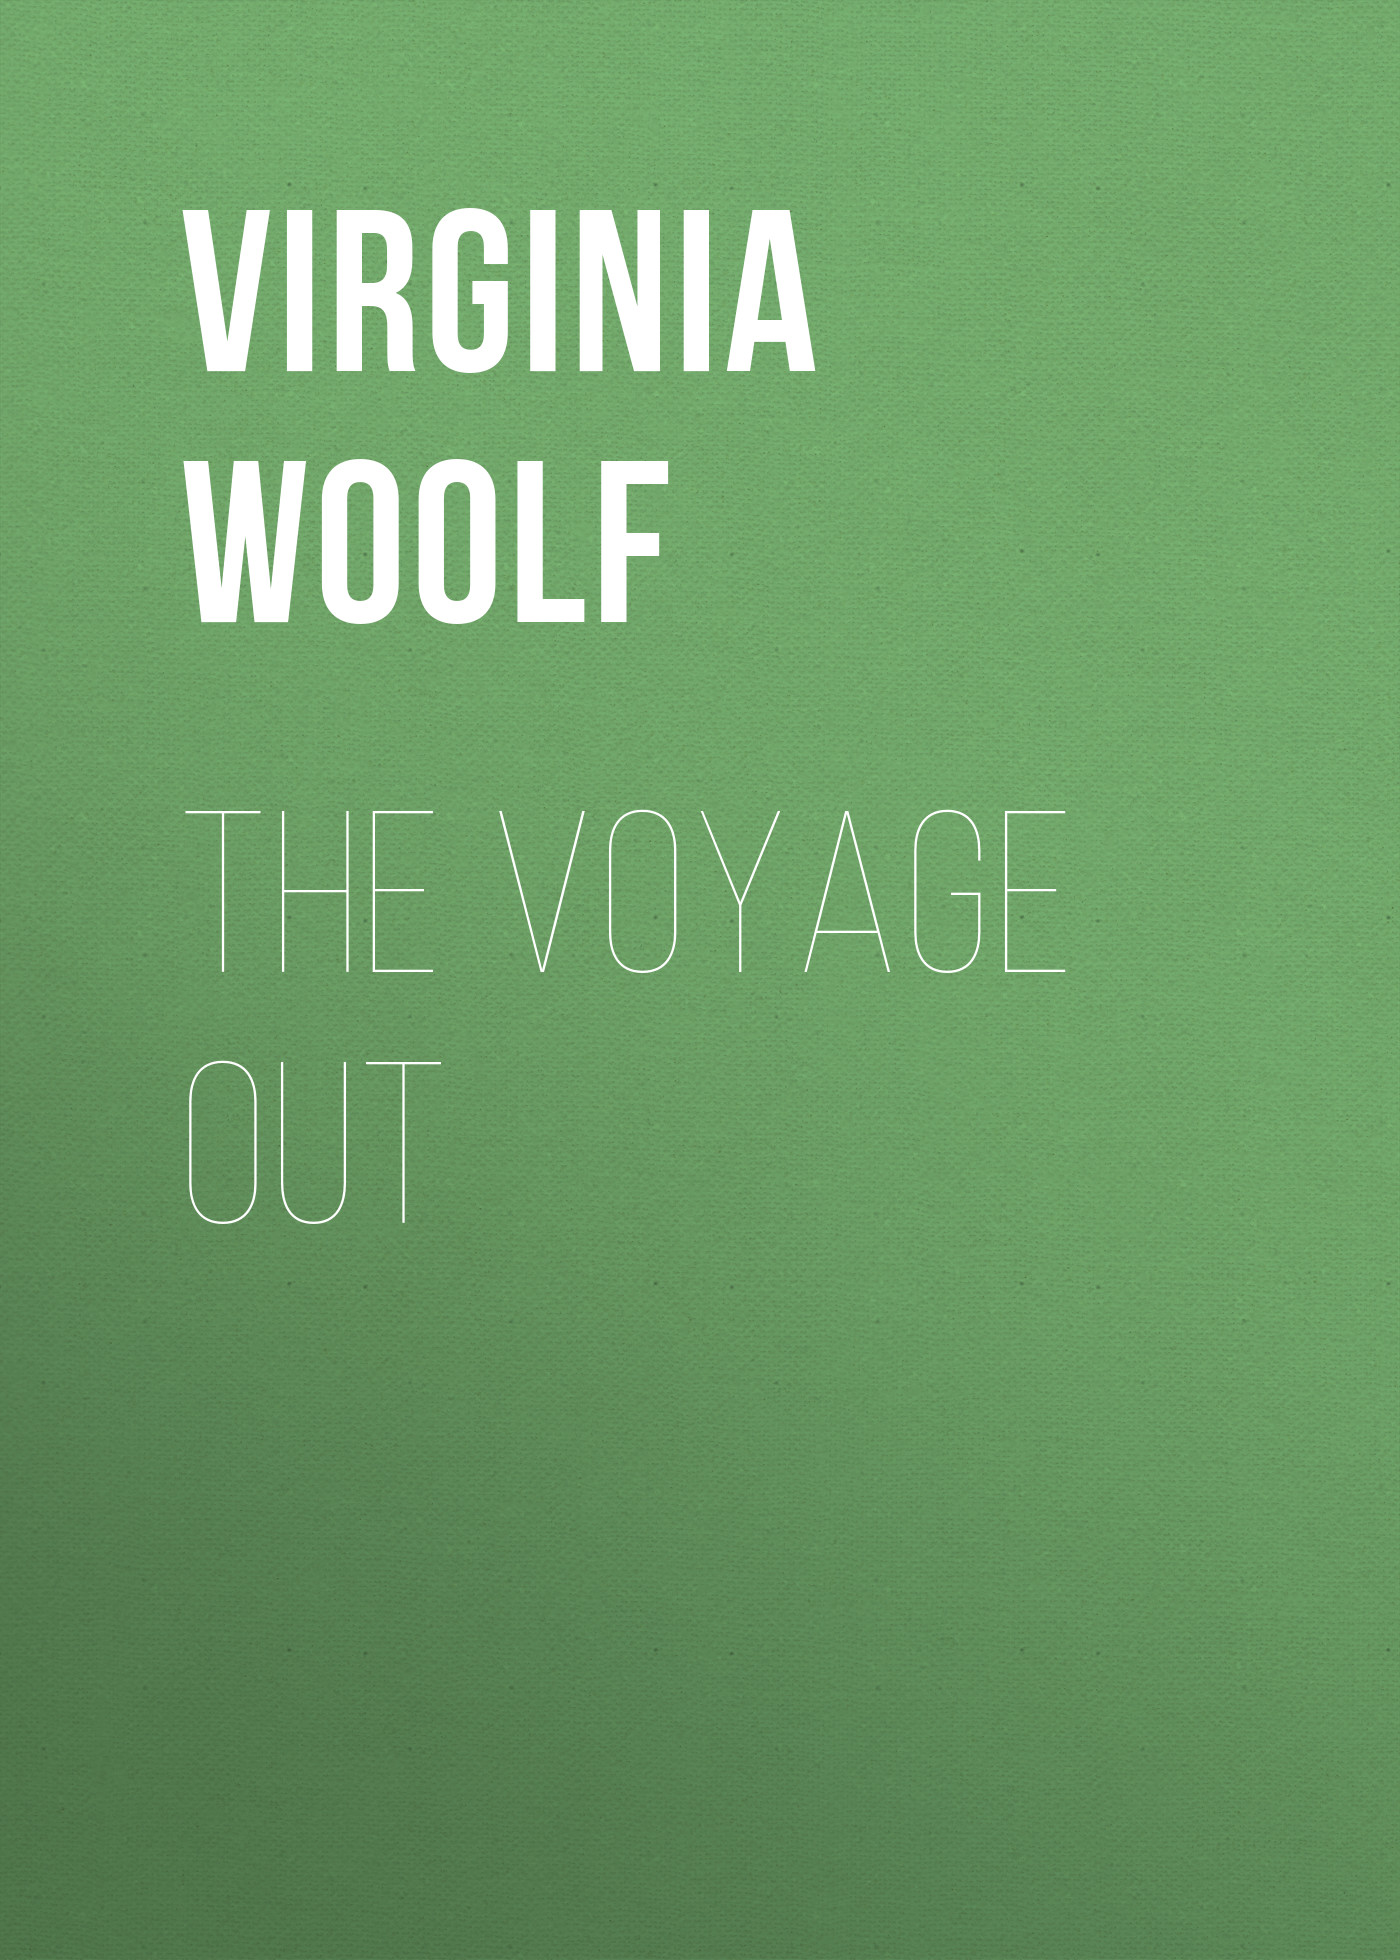 Virginia Woolf The Voyage Out